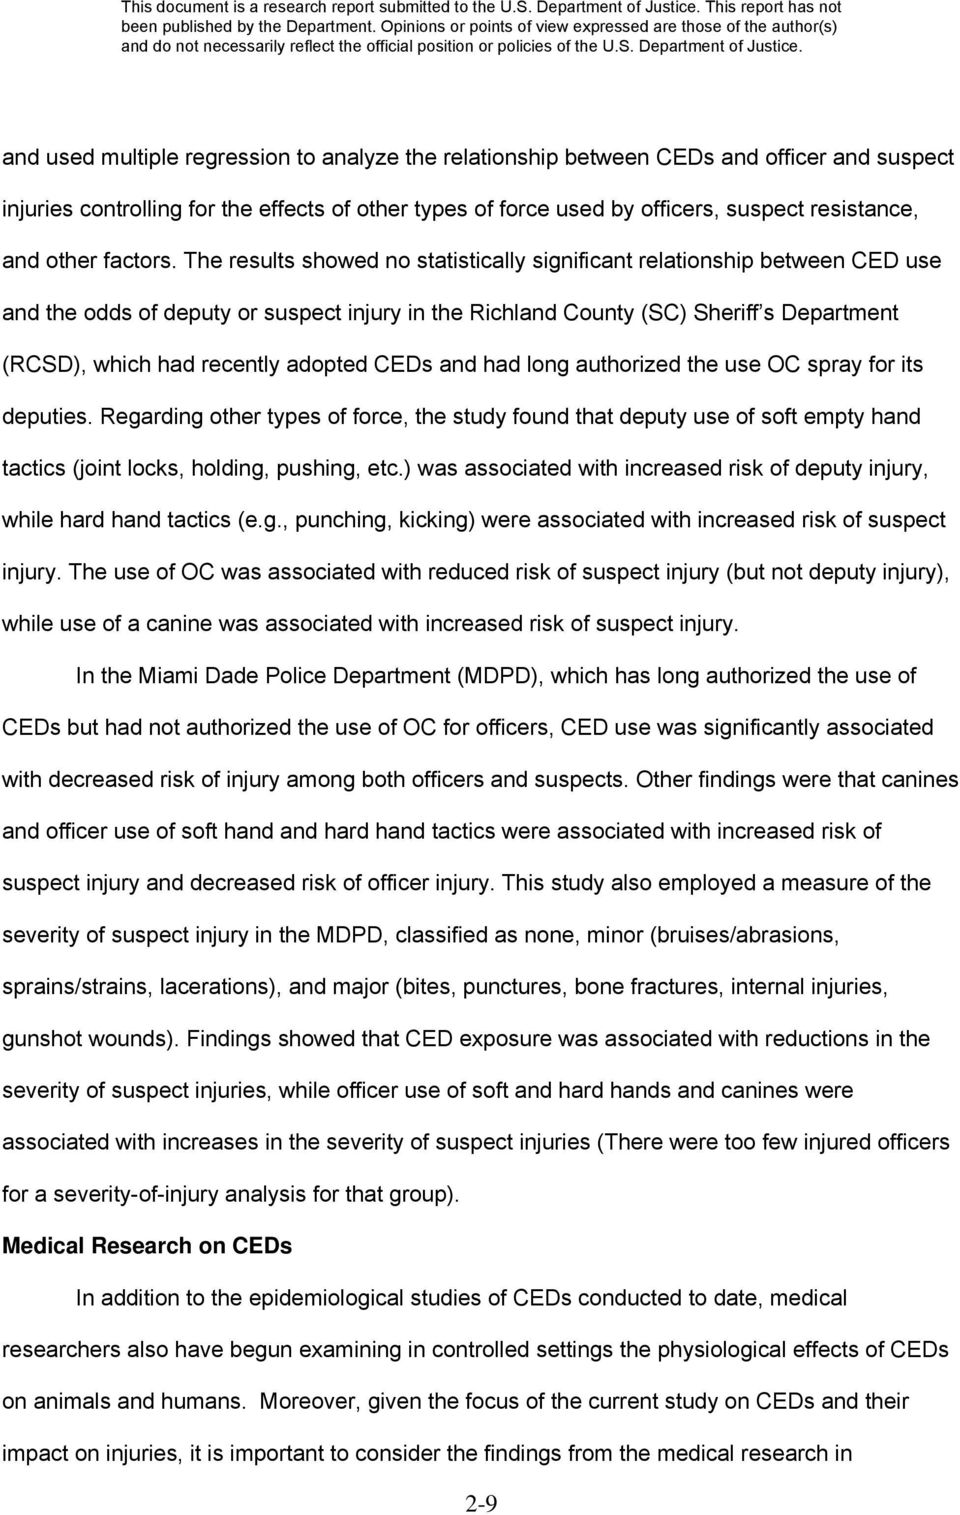 The results showed no statistically significant relationship between CED use and the odds of deputy or suspect injury in the Richland County (SC) Sheriff s Department (RCSD), which had recently